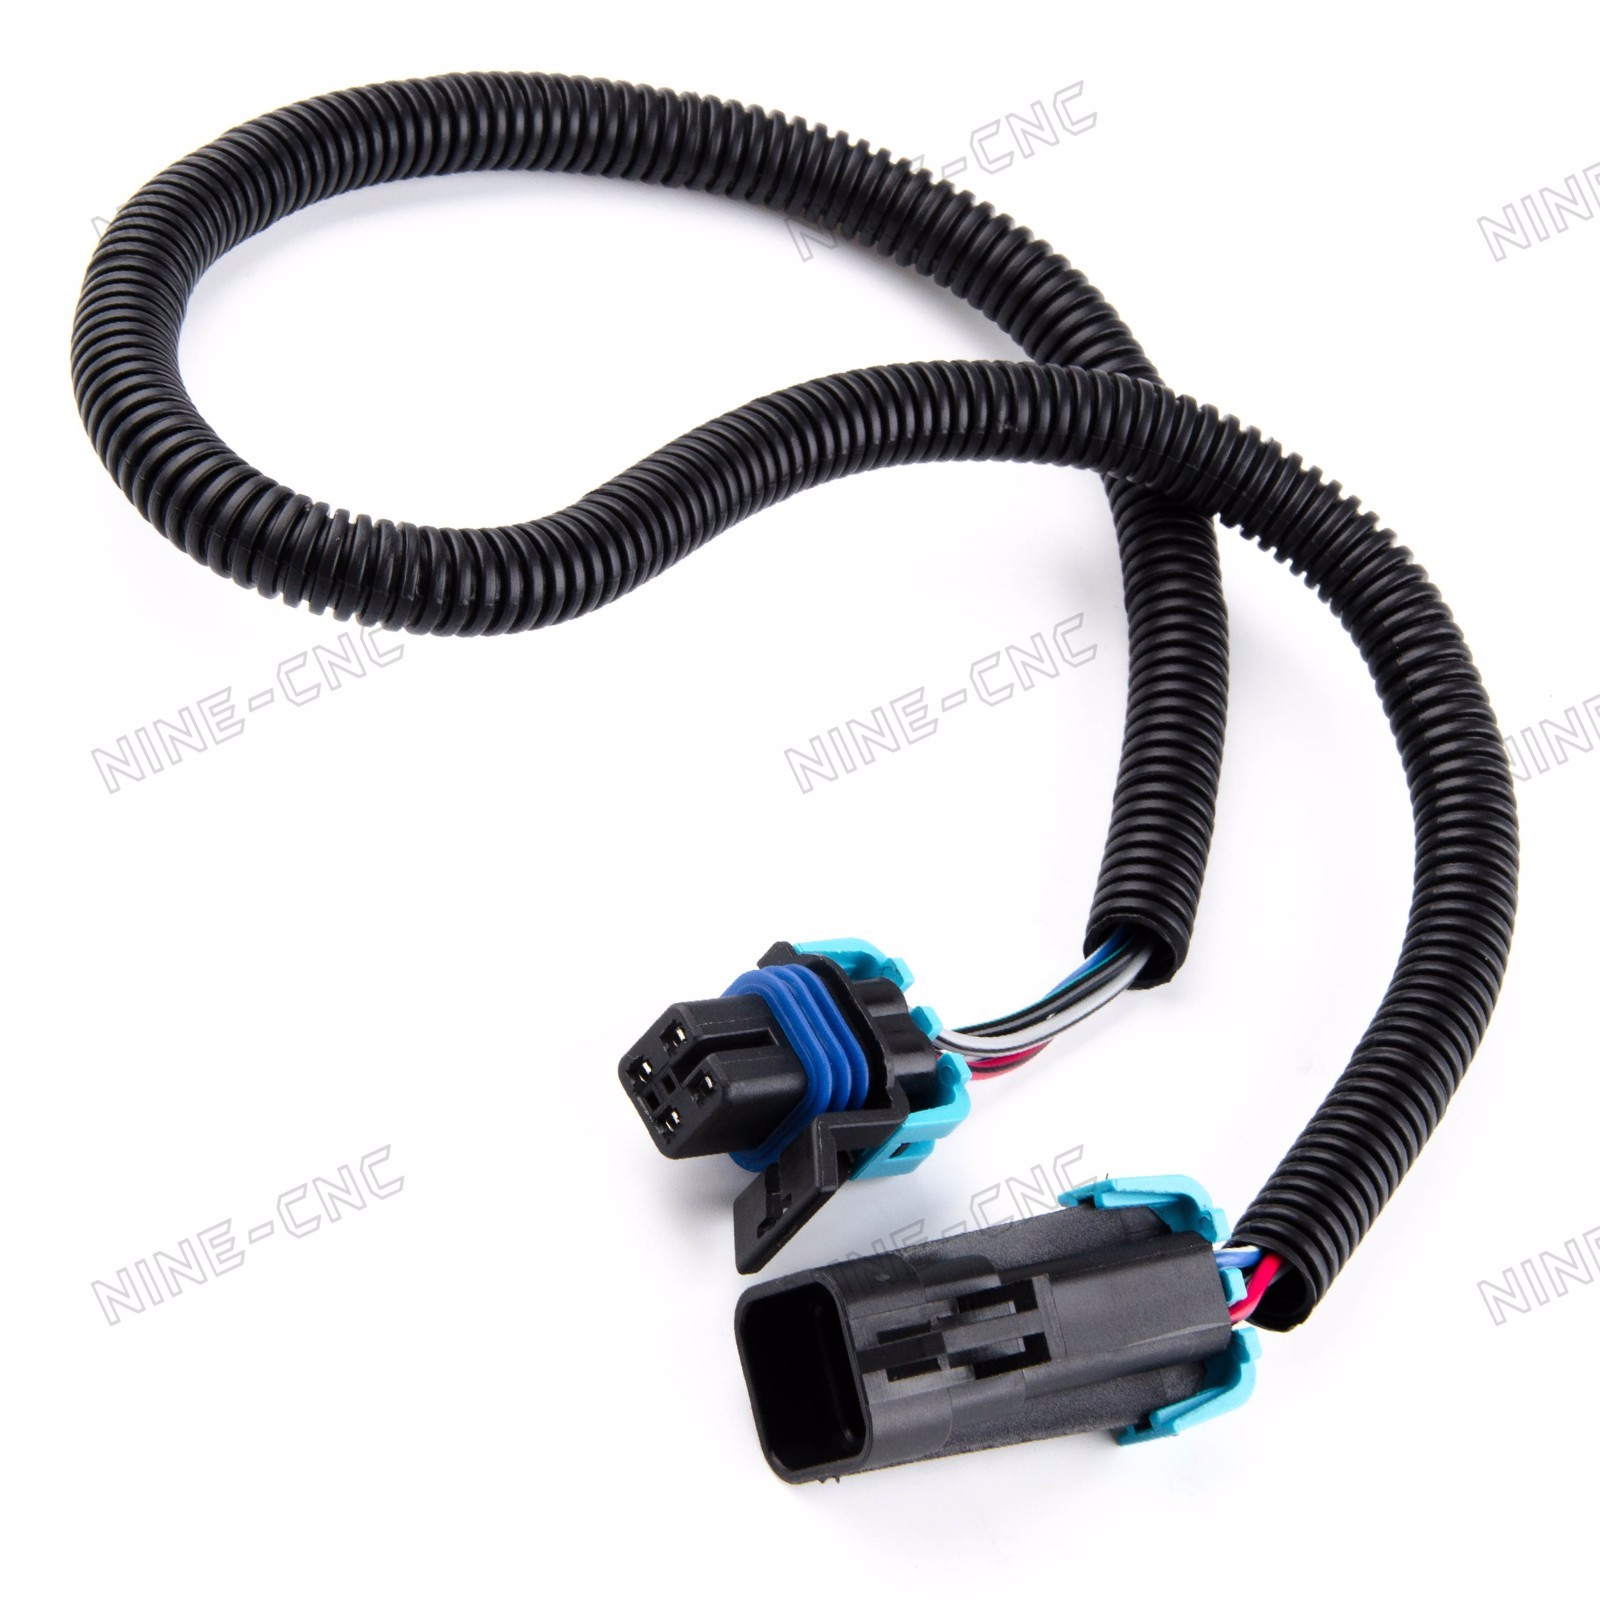 hight resolution of 2pcs oxygen sensor extension wiring for camaro trans am ls1 engines 98 02